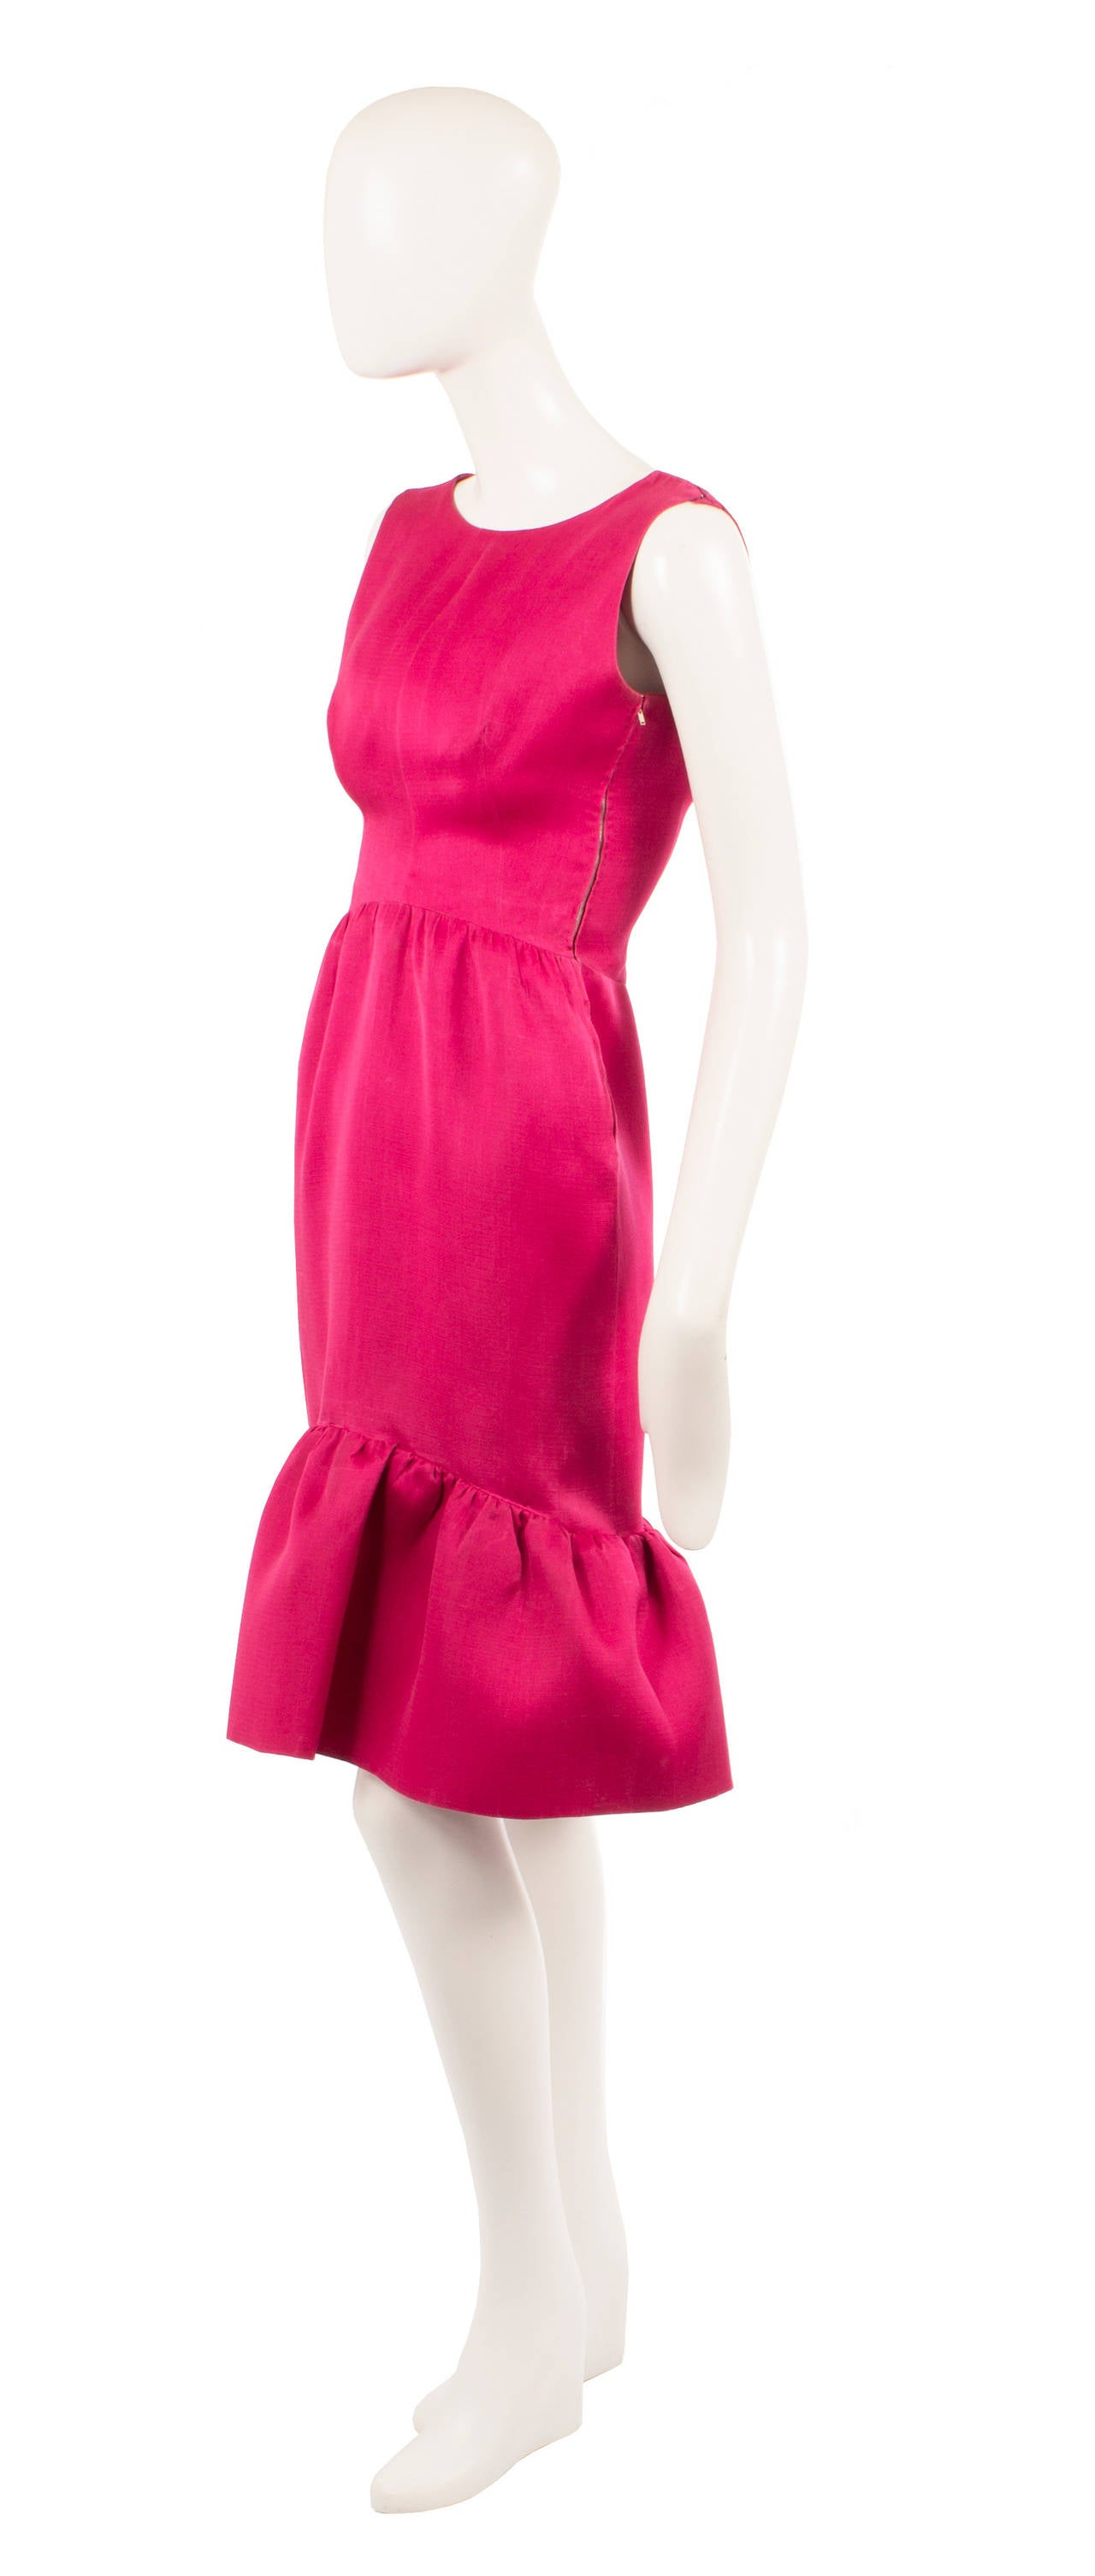 Balenciaga haute couture magenta silk dress, circa 1965 2